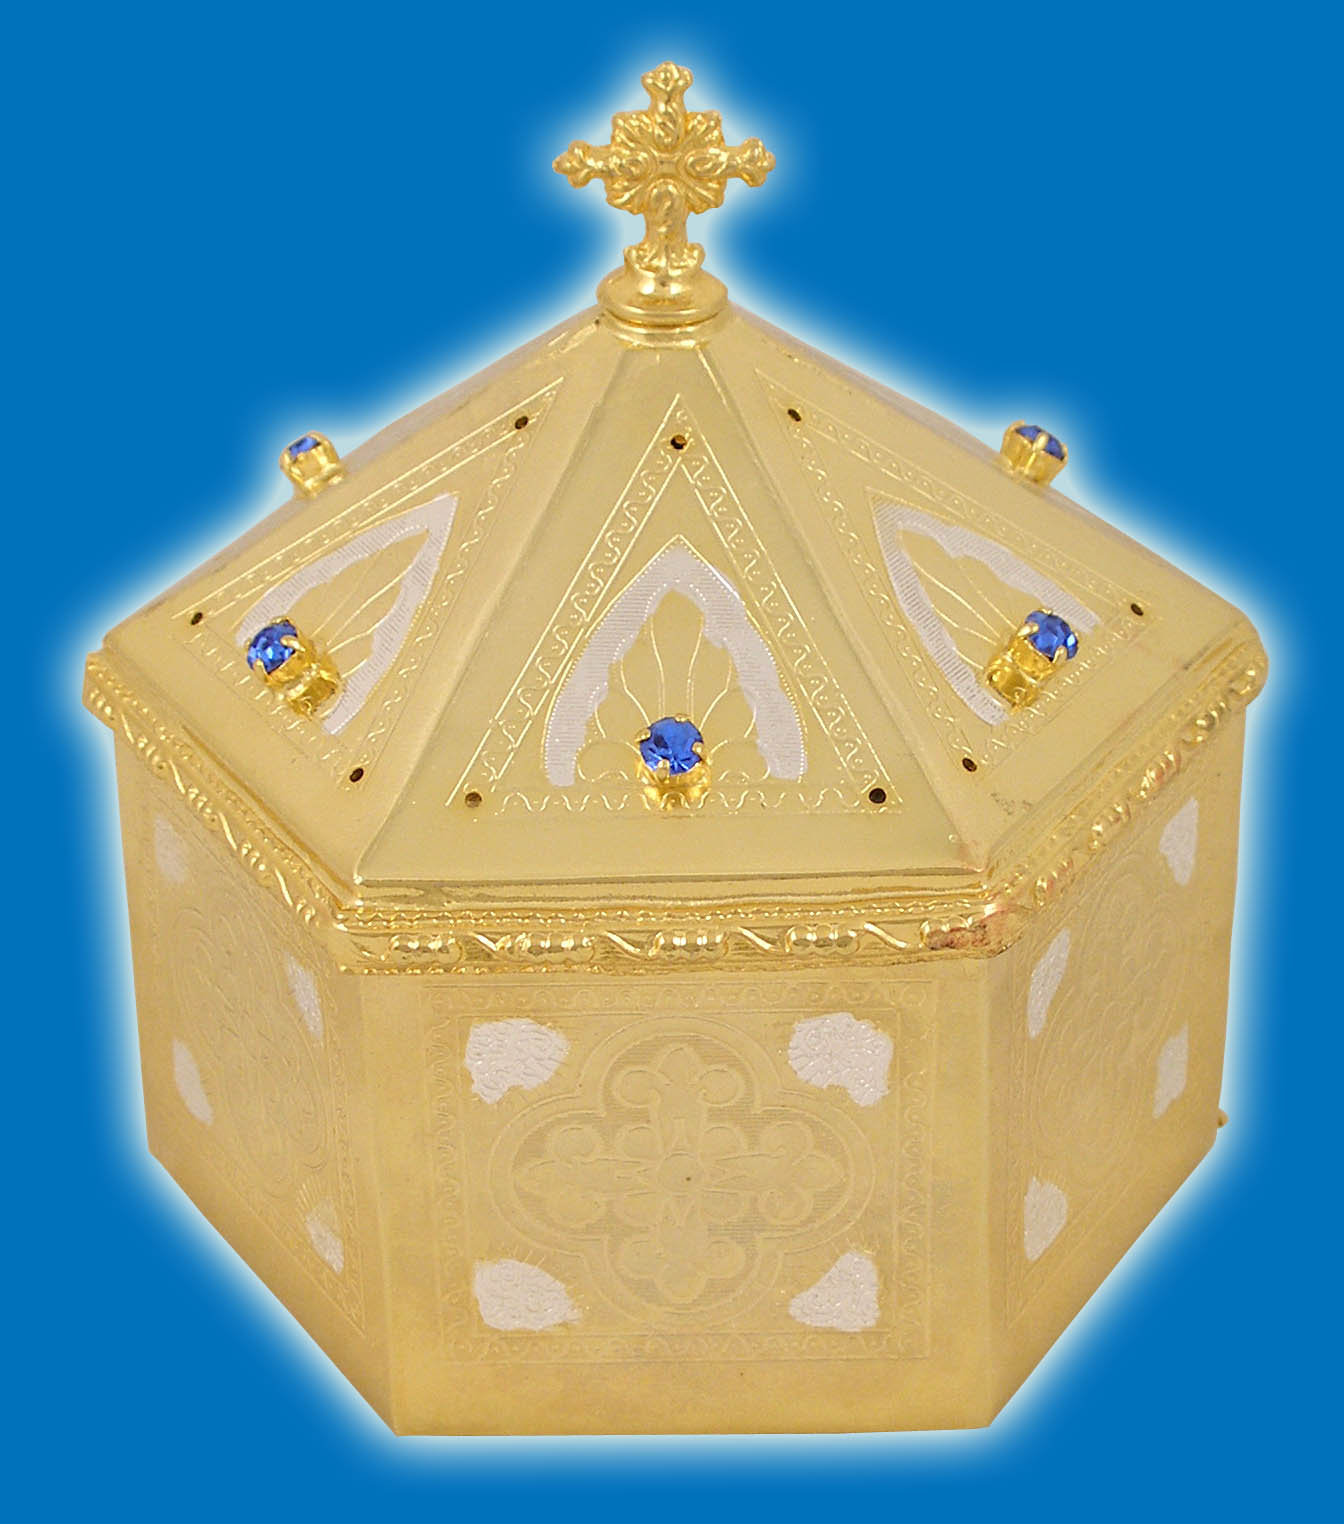 Reliquary or Relics Box - Tabernacle Hexagon Gold and Silver Plated